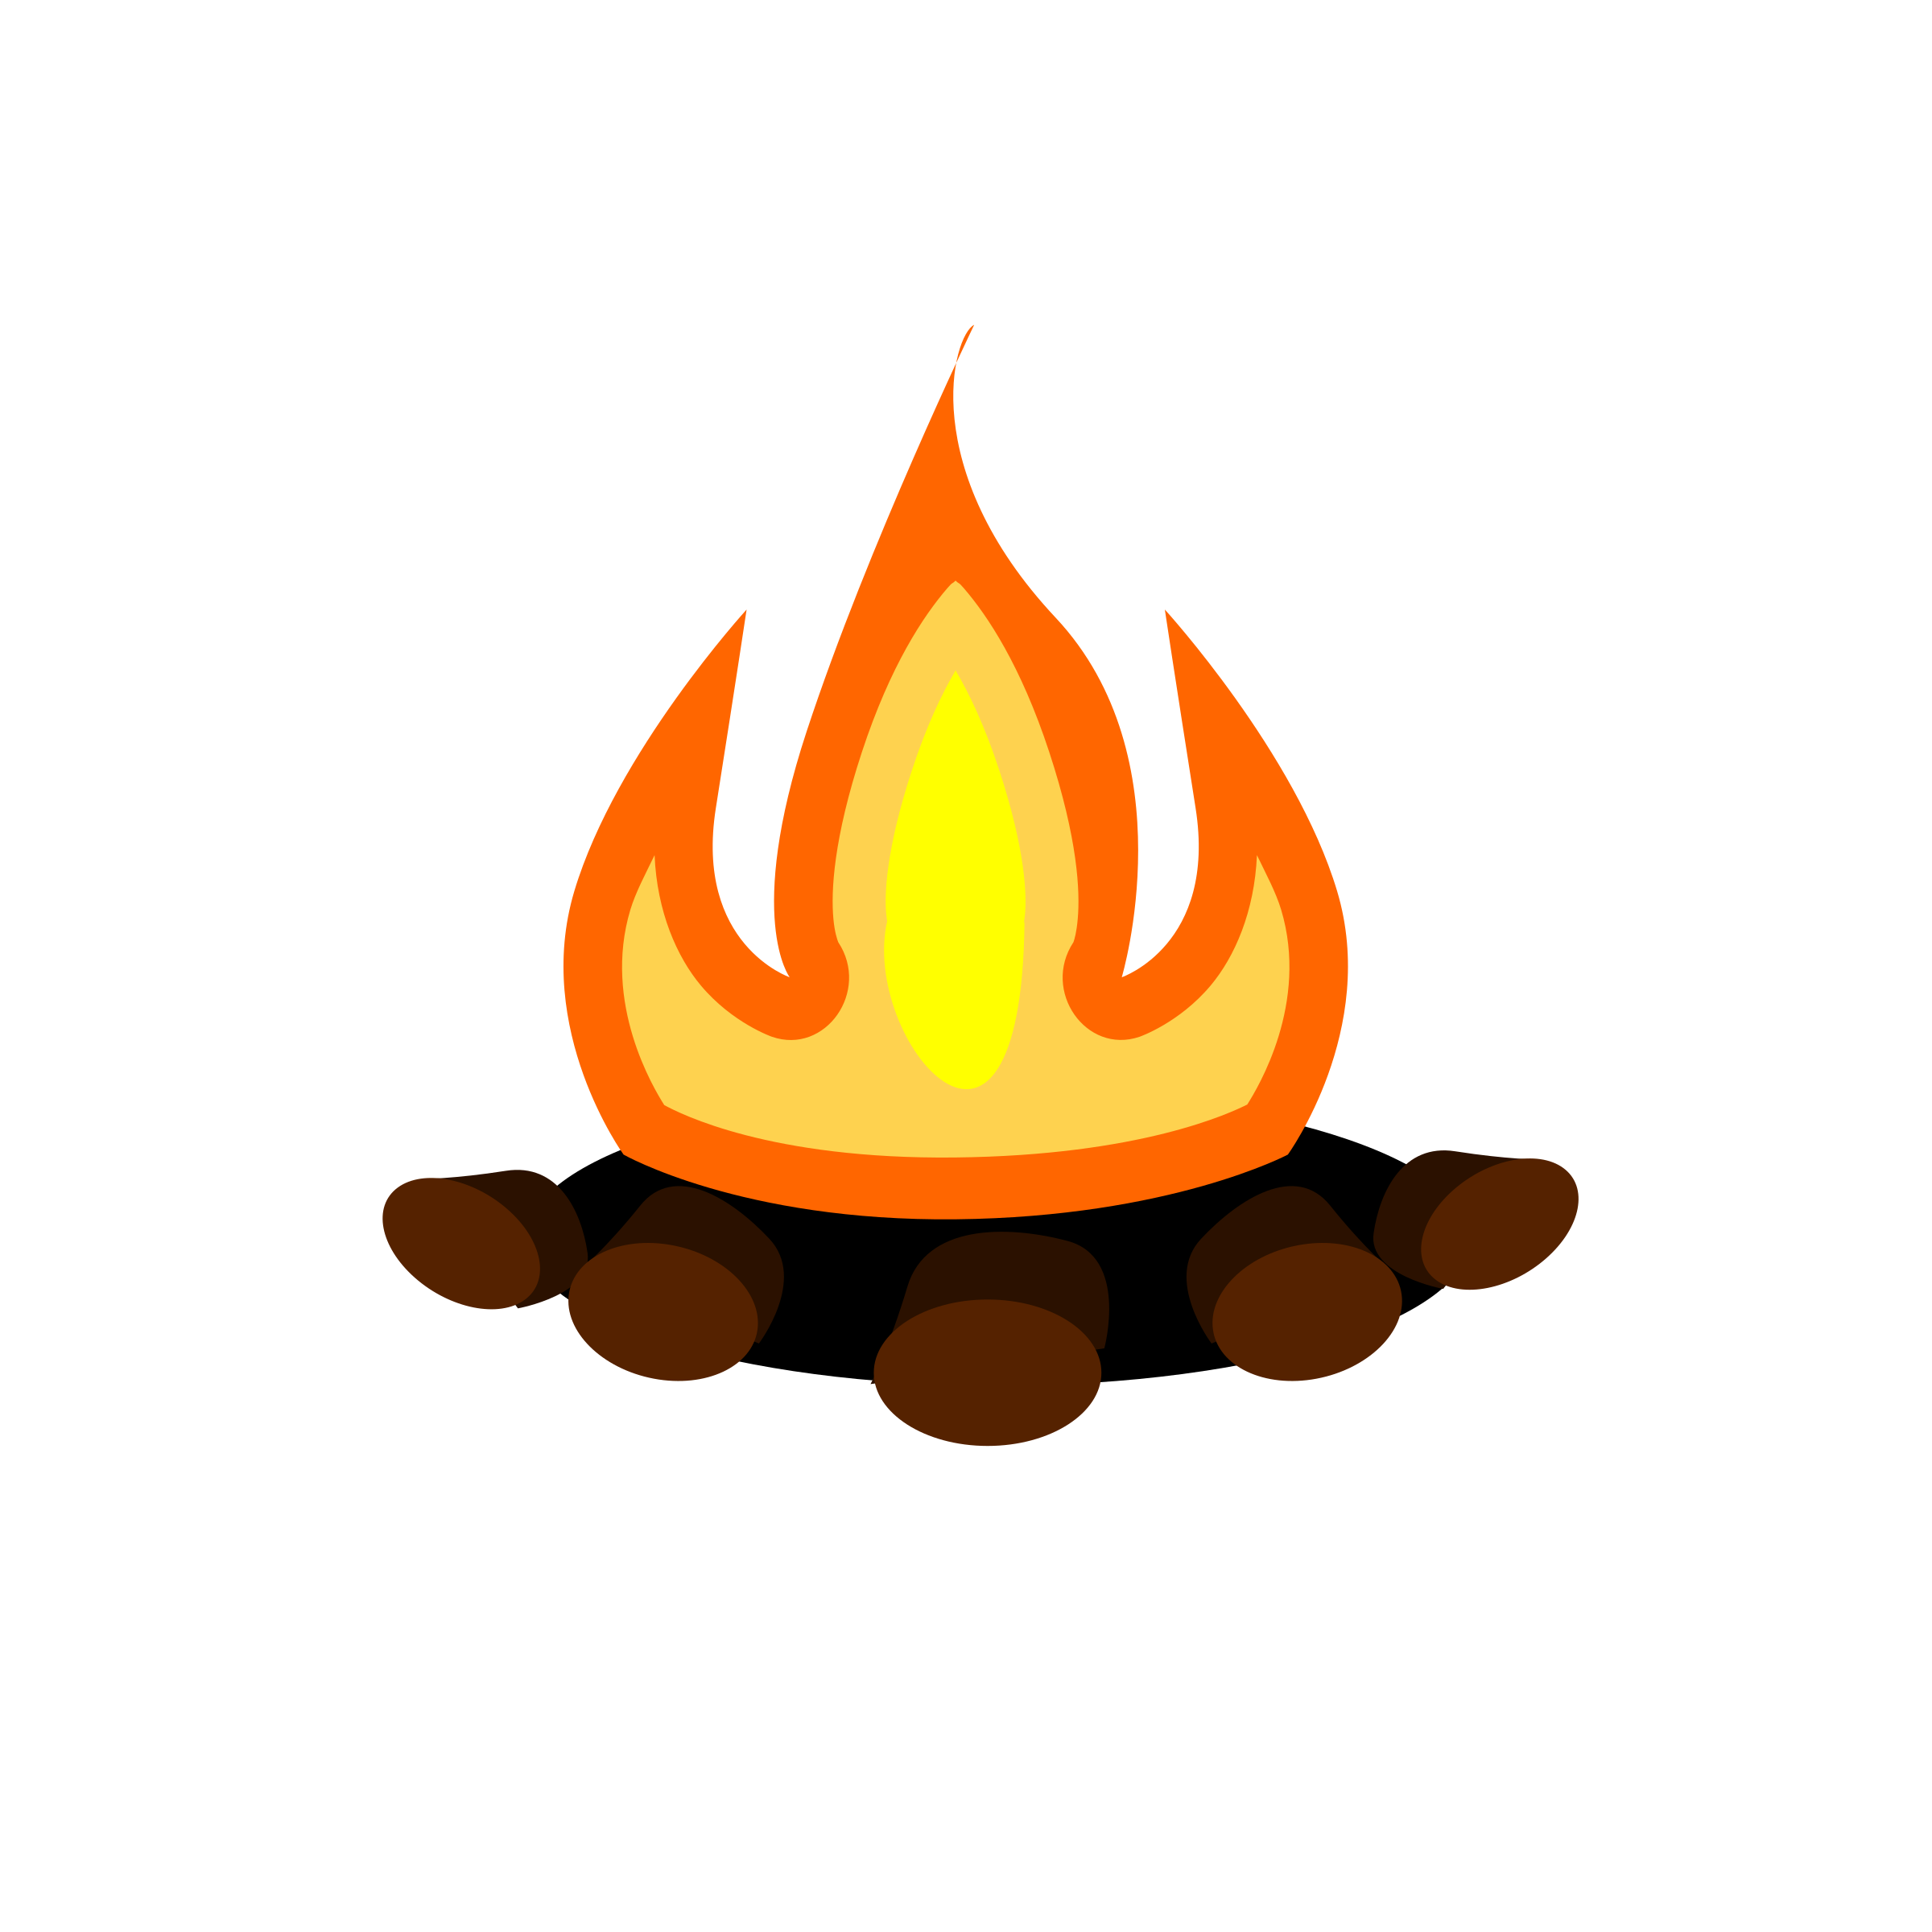 Campfire clipart clear background PNG PNGMart Transparent Images Campfire